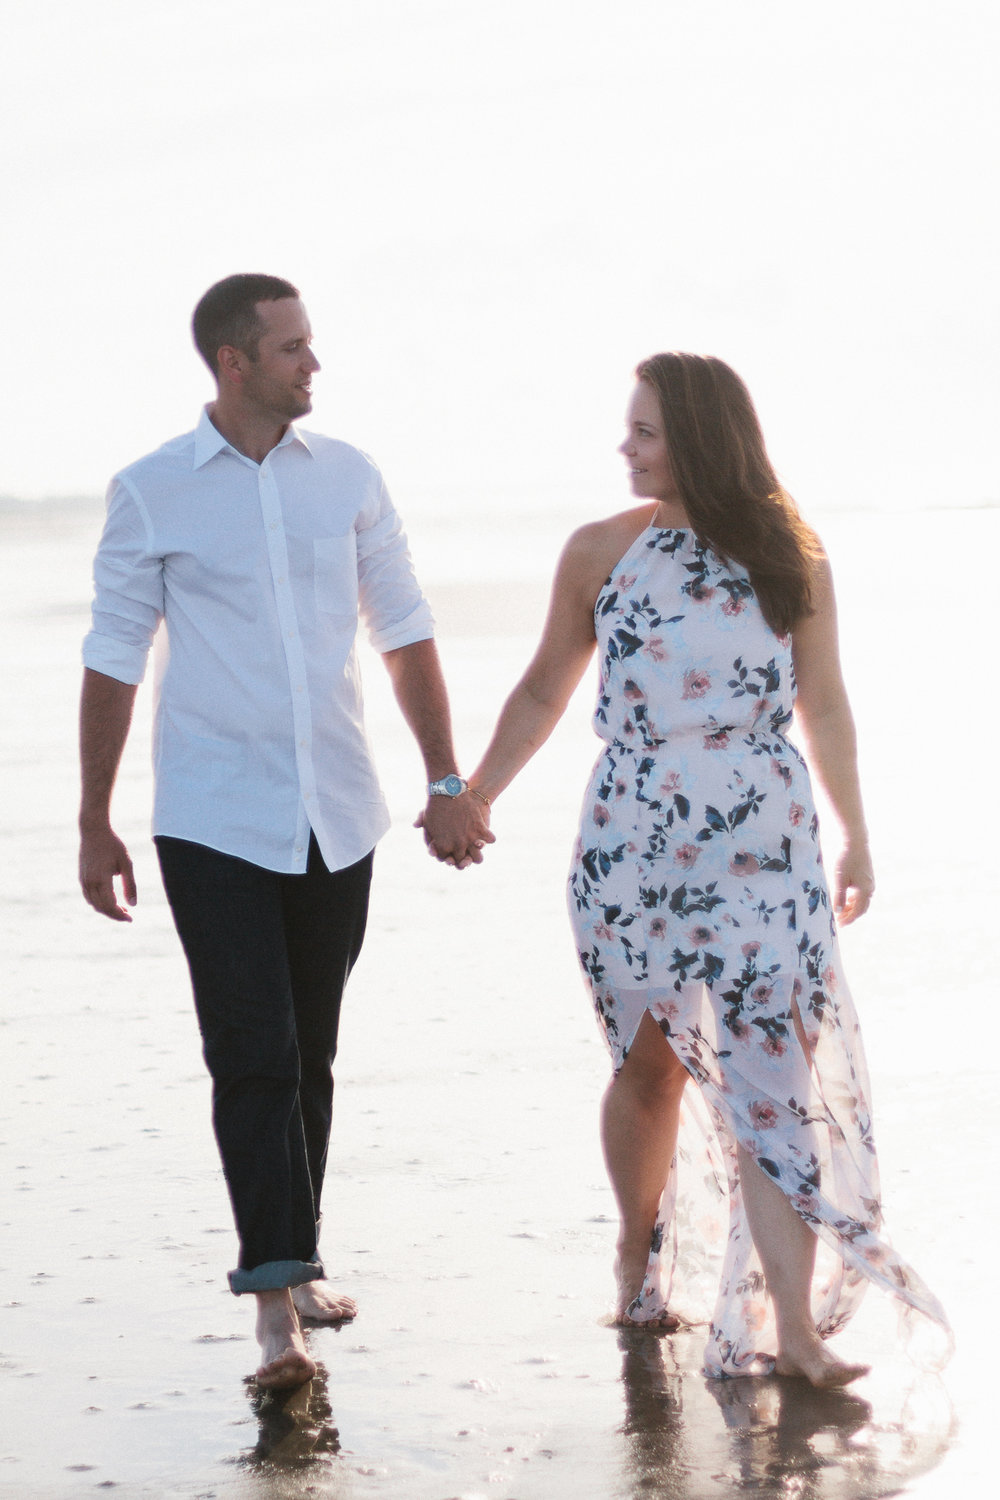 Engaged couple walking on the beach at Kiawah Island Beach Resort, Kiawah Island South Carolina by Danielle Gallo Photography